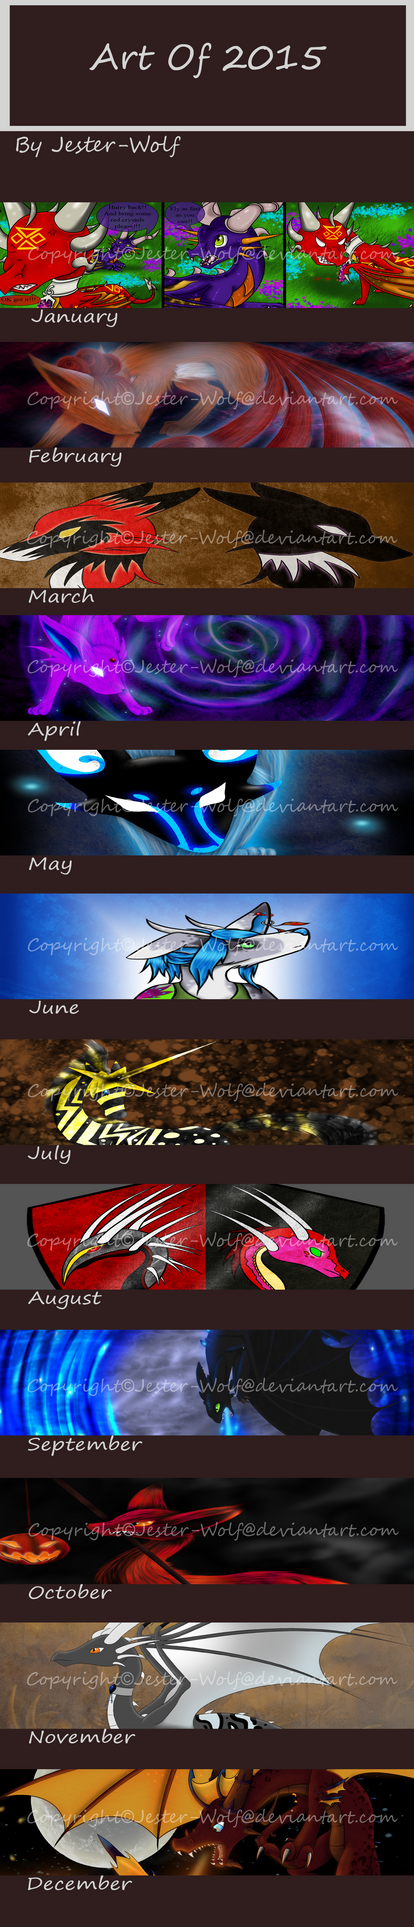 Art Of 2015 by Jester-Wolf